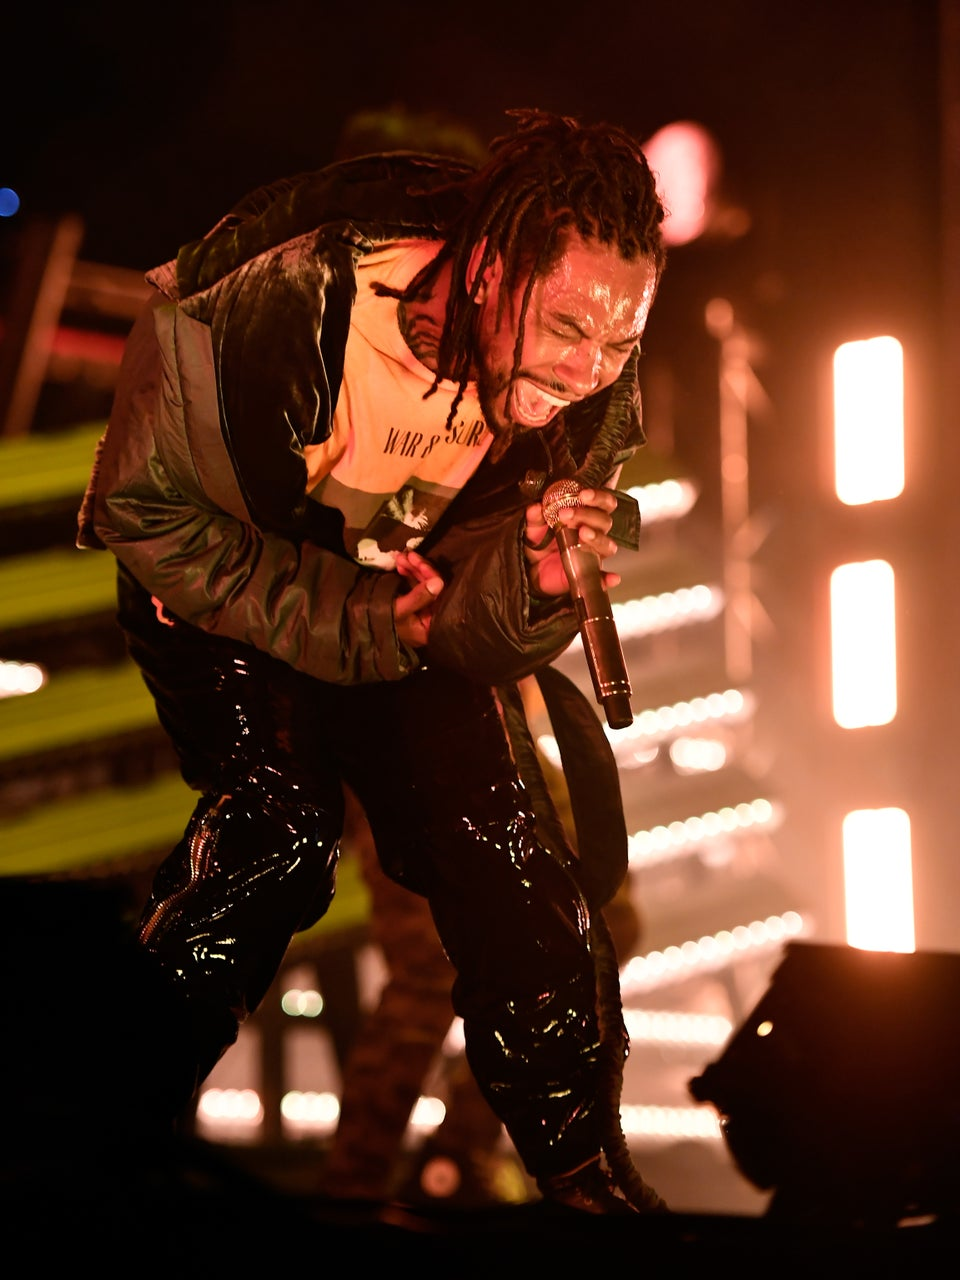 WATCH: Miguel Rocks The Stage With New Music, Classics And More In Epic Coachella Performance